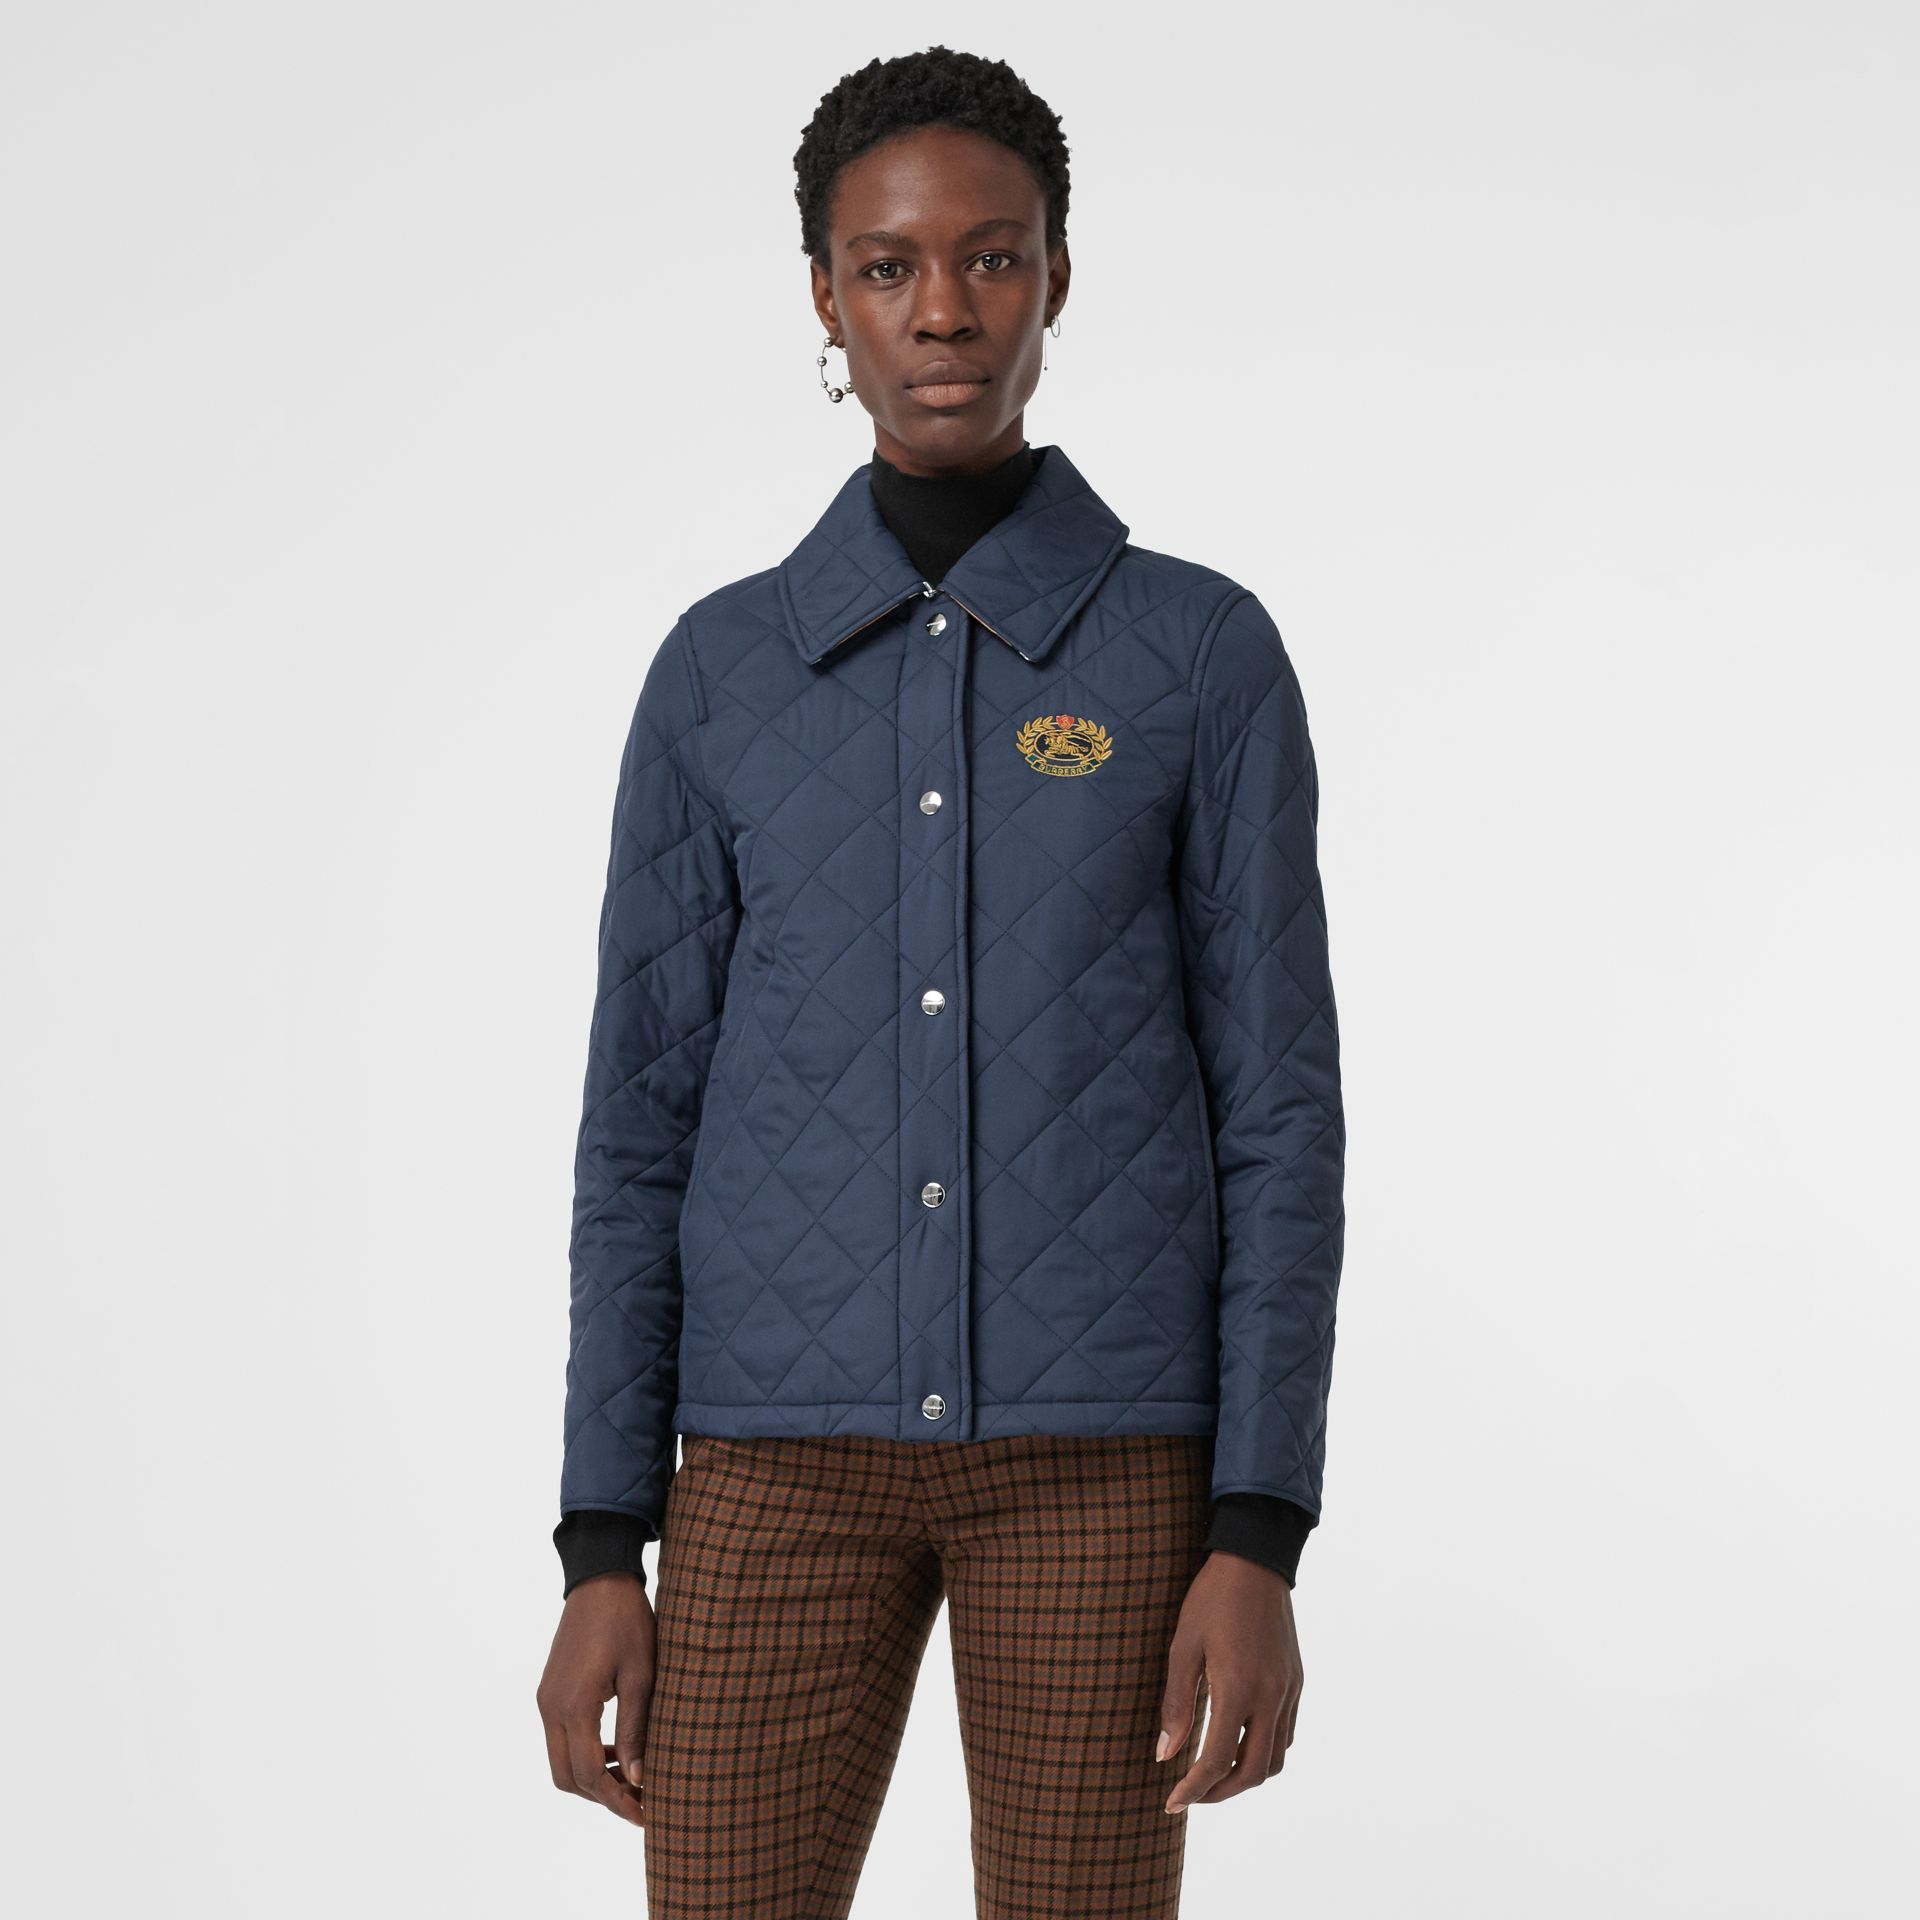 Embroidered Crest Diamond Quilted Jacket in Navy - Women | Burberry - gallery image 5